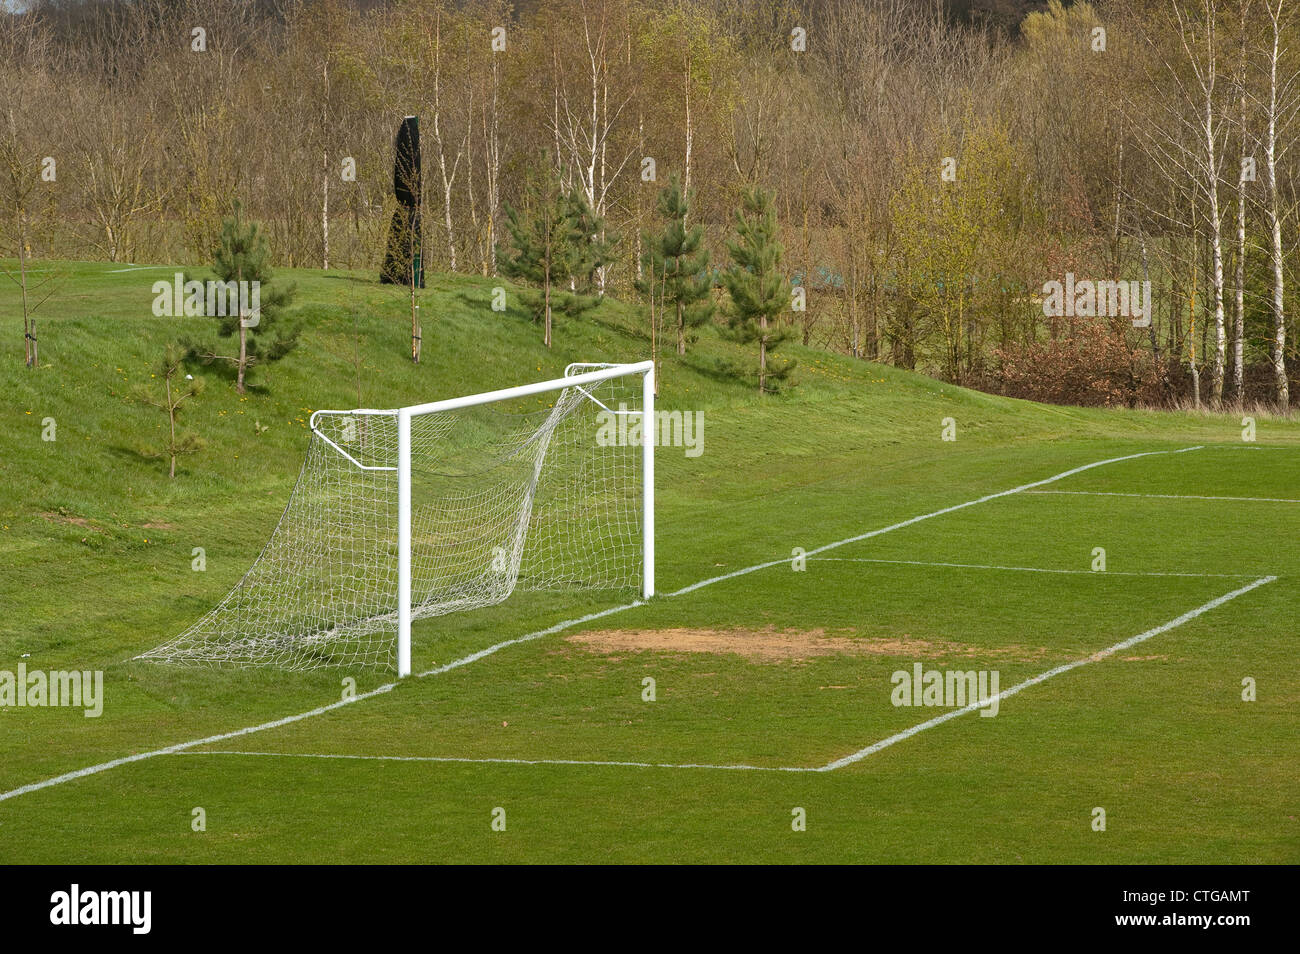 Goal posts on an empty football pitch in a park in England. - Stock Image